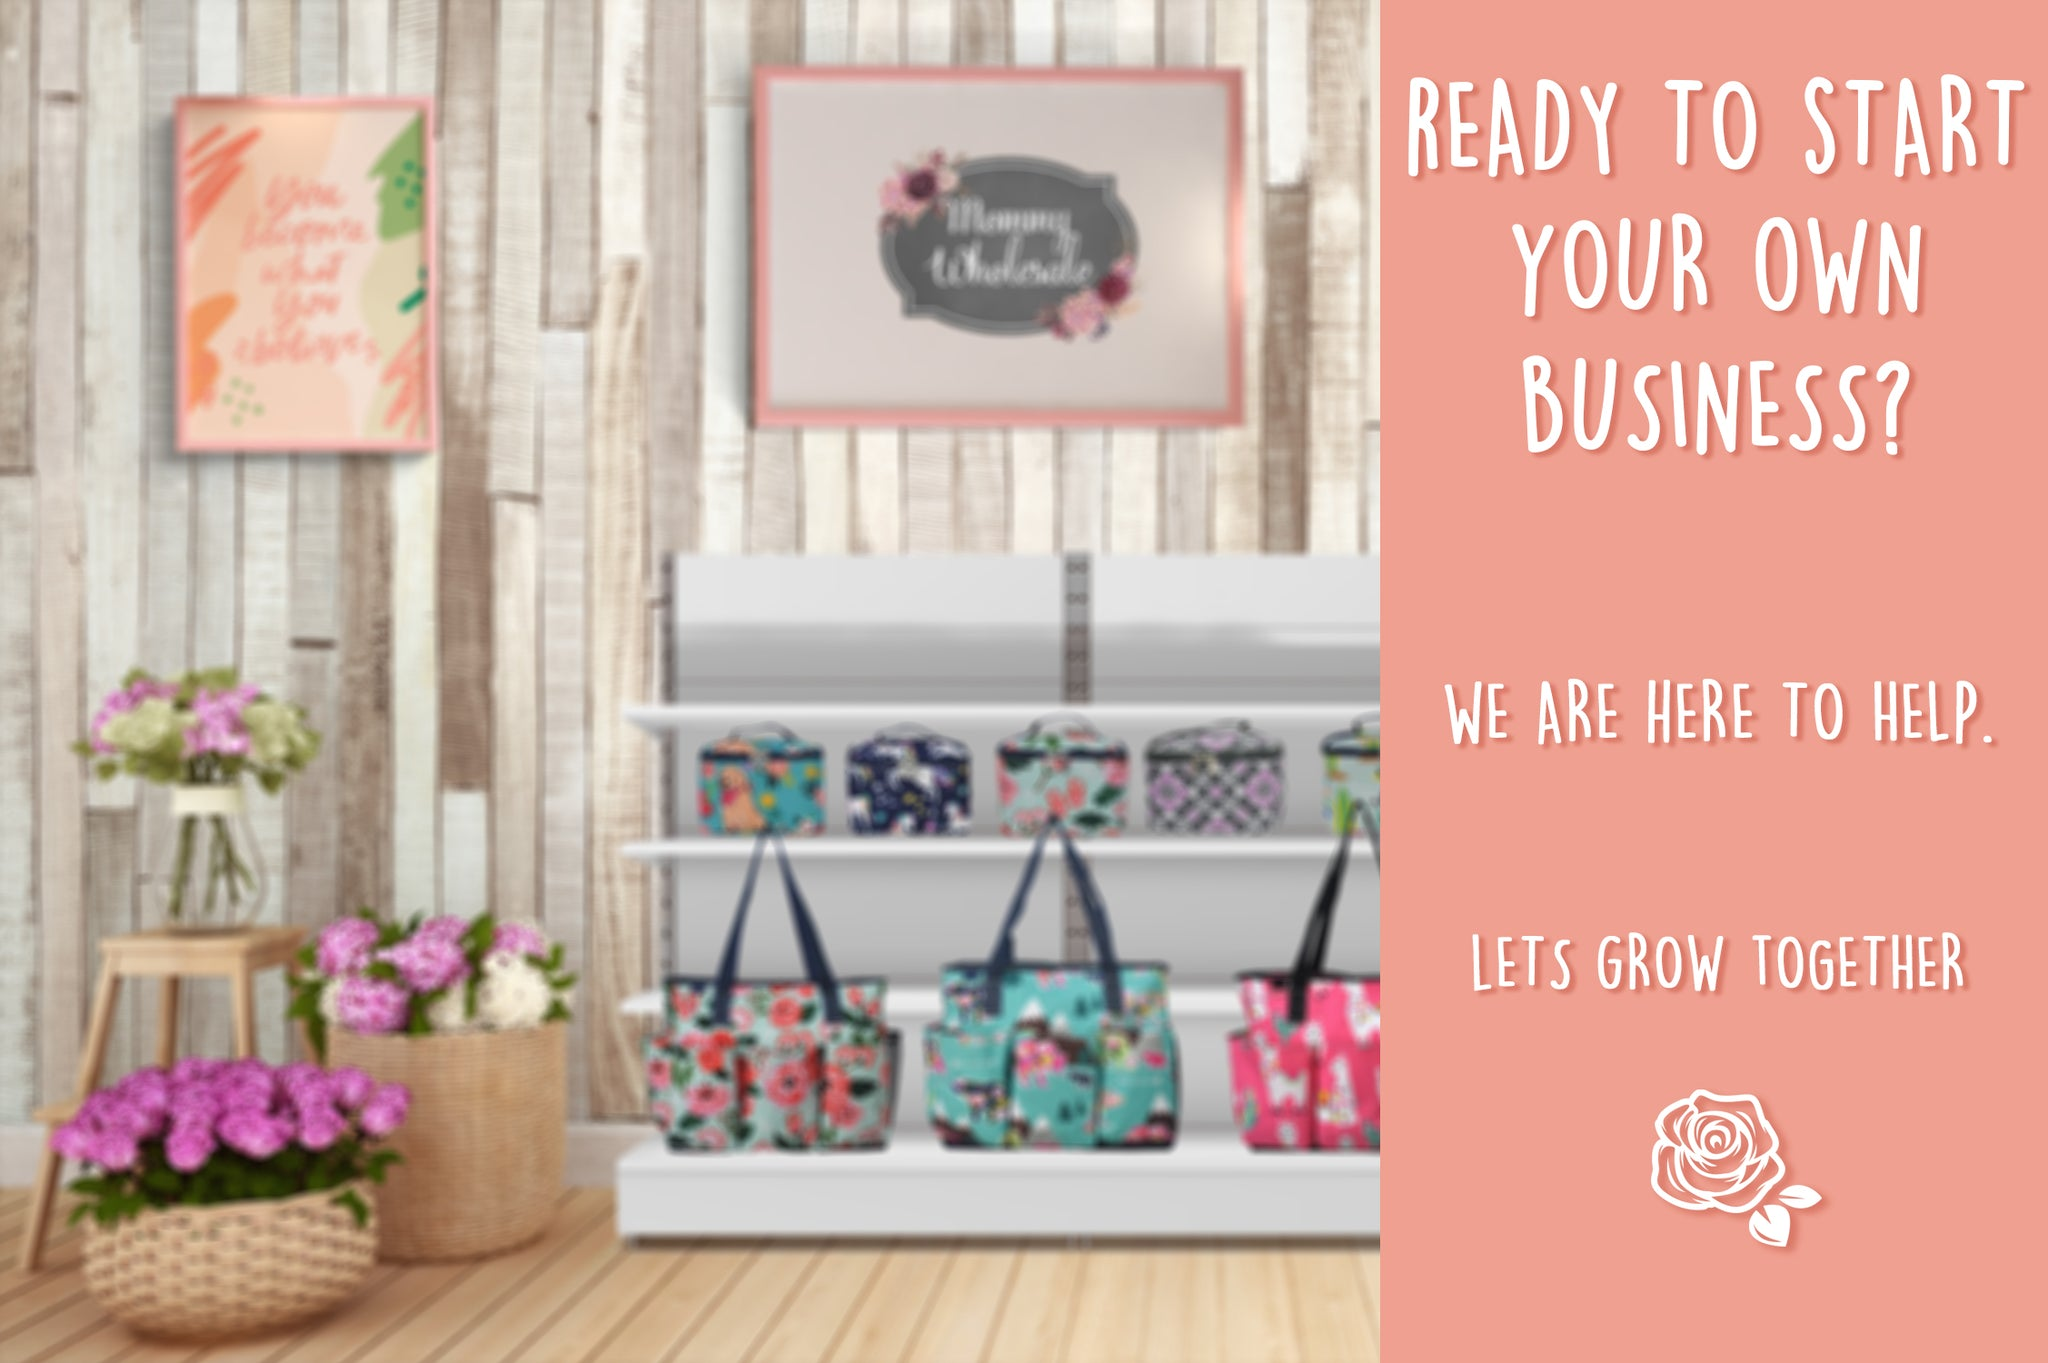 Boutique Shop Supplier, Small Town Pharmacy Shop Supplier, Start Your Own Business, Online Boutique Supplier, Etsy Shop Supplier, Monogram Bag Shop, Personalized Handbags, Womans small business